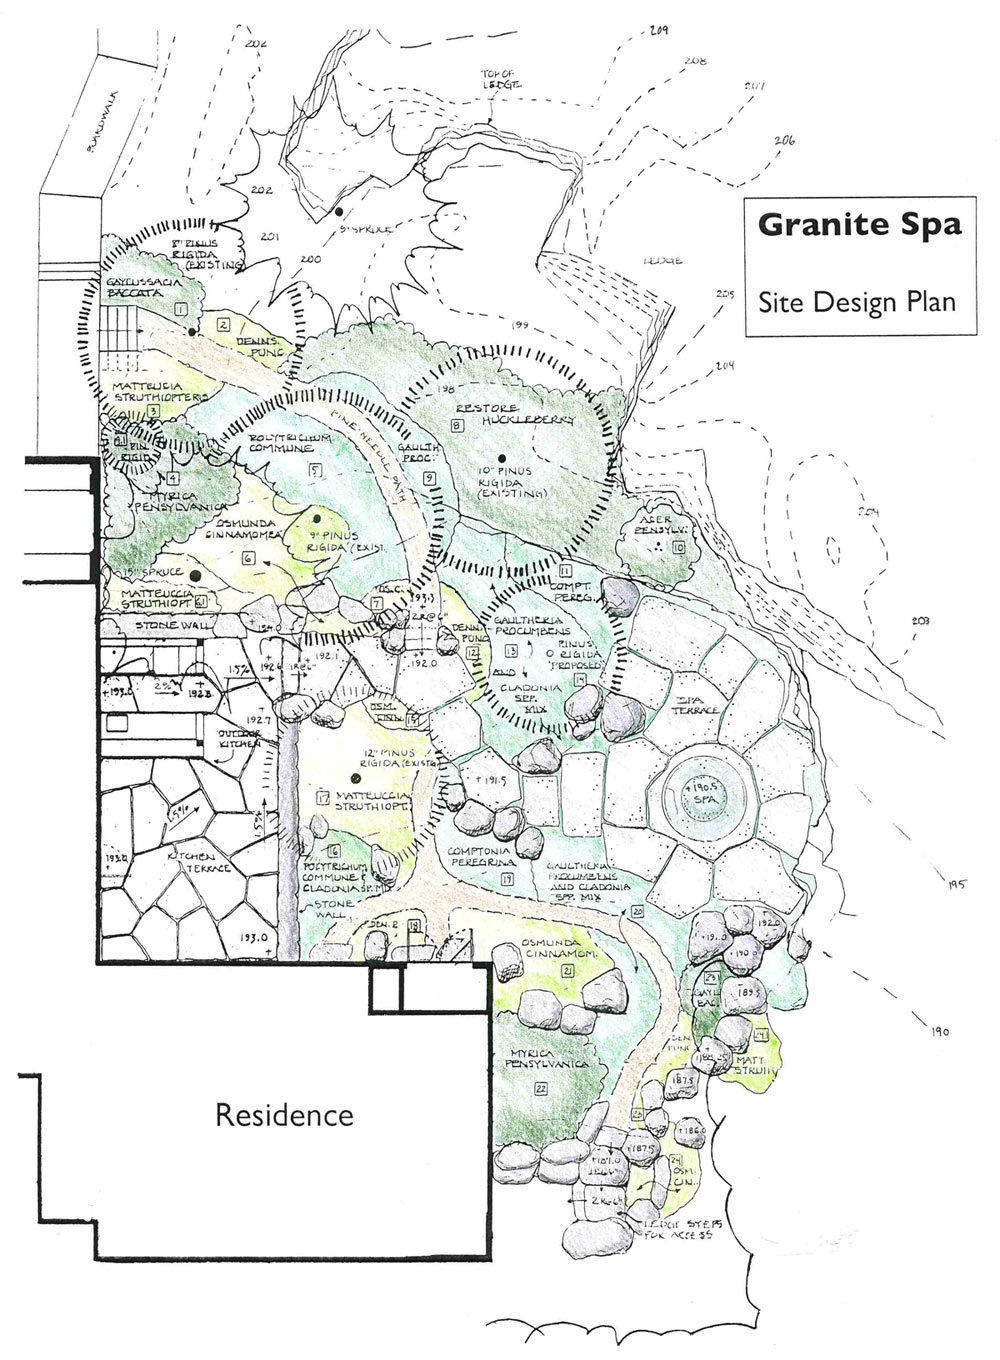 sketch schematic for granite spa landscape design